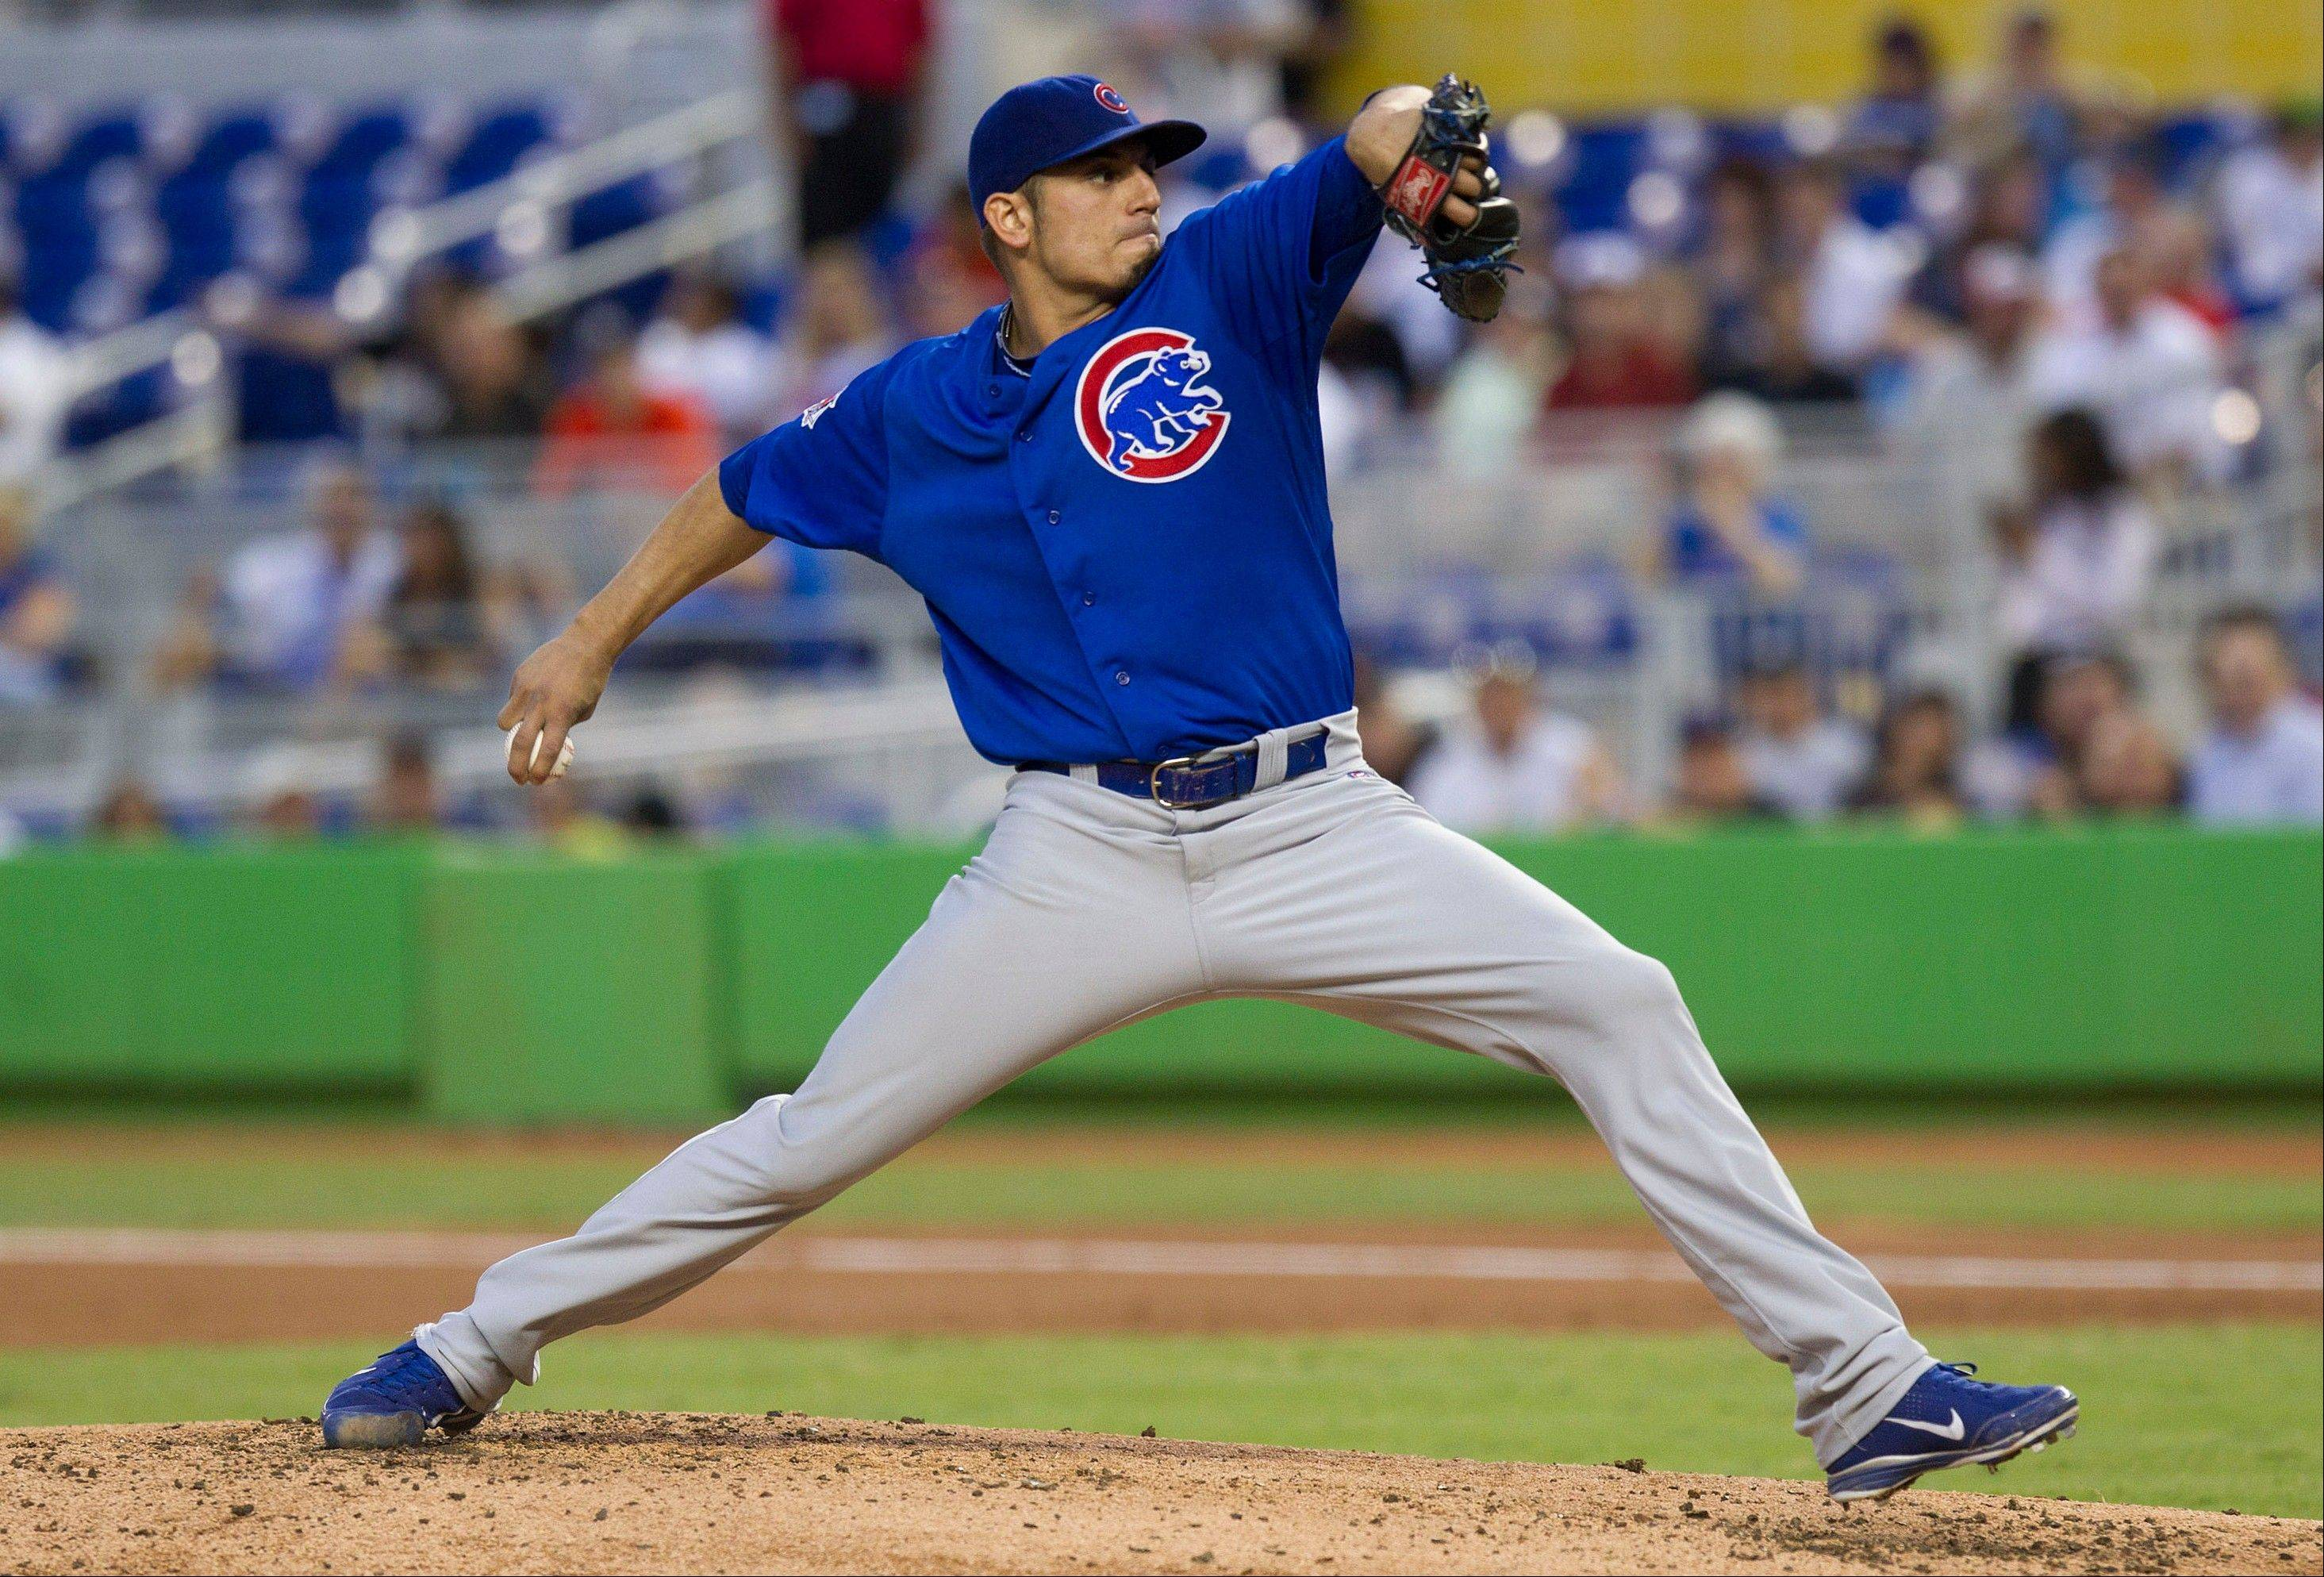 Cubs' Garza struggles, with no help from offense